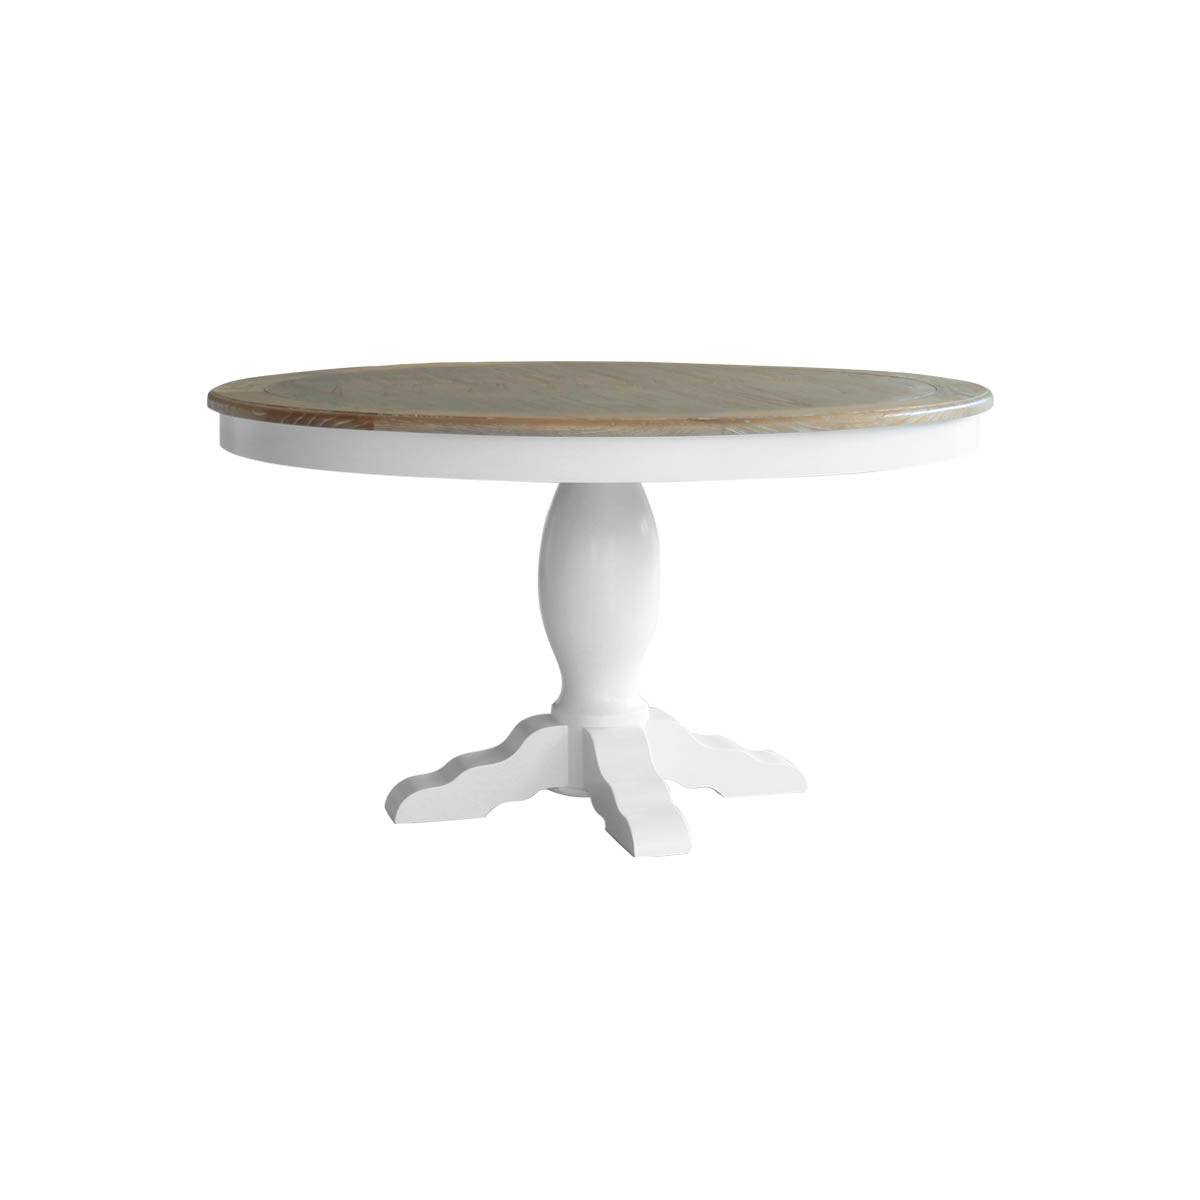 indonesian furniture - round white dining table with wood colored top